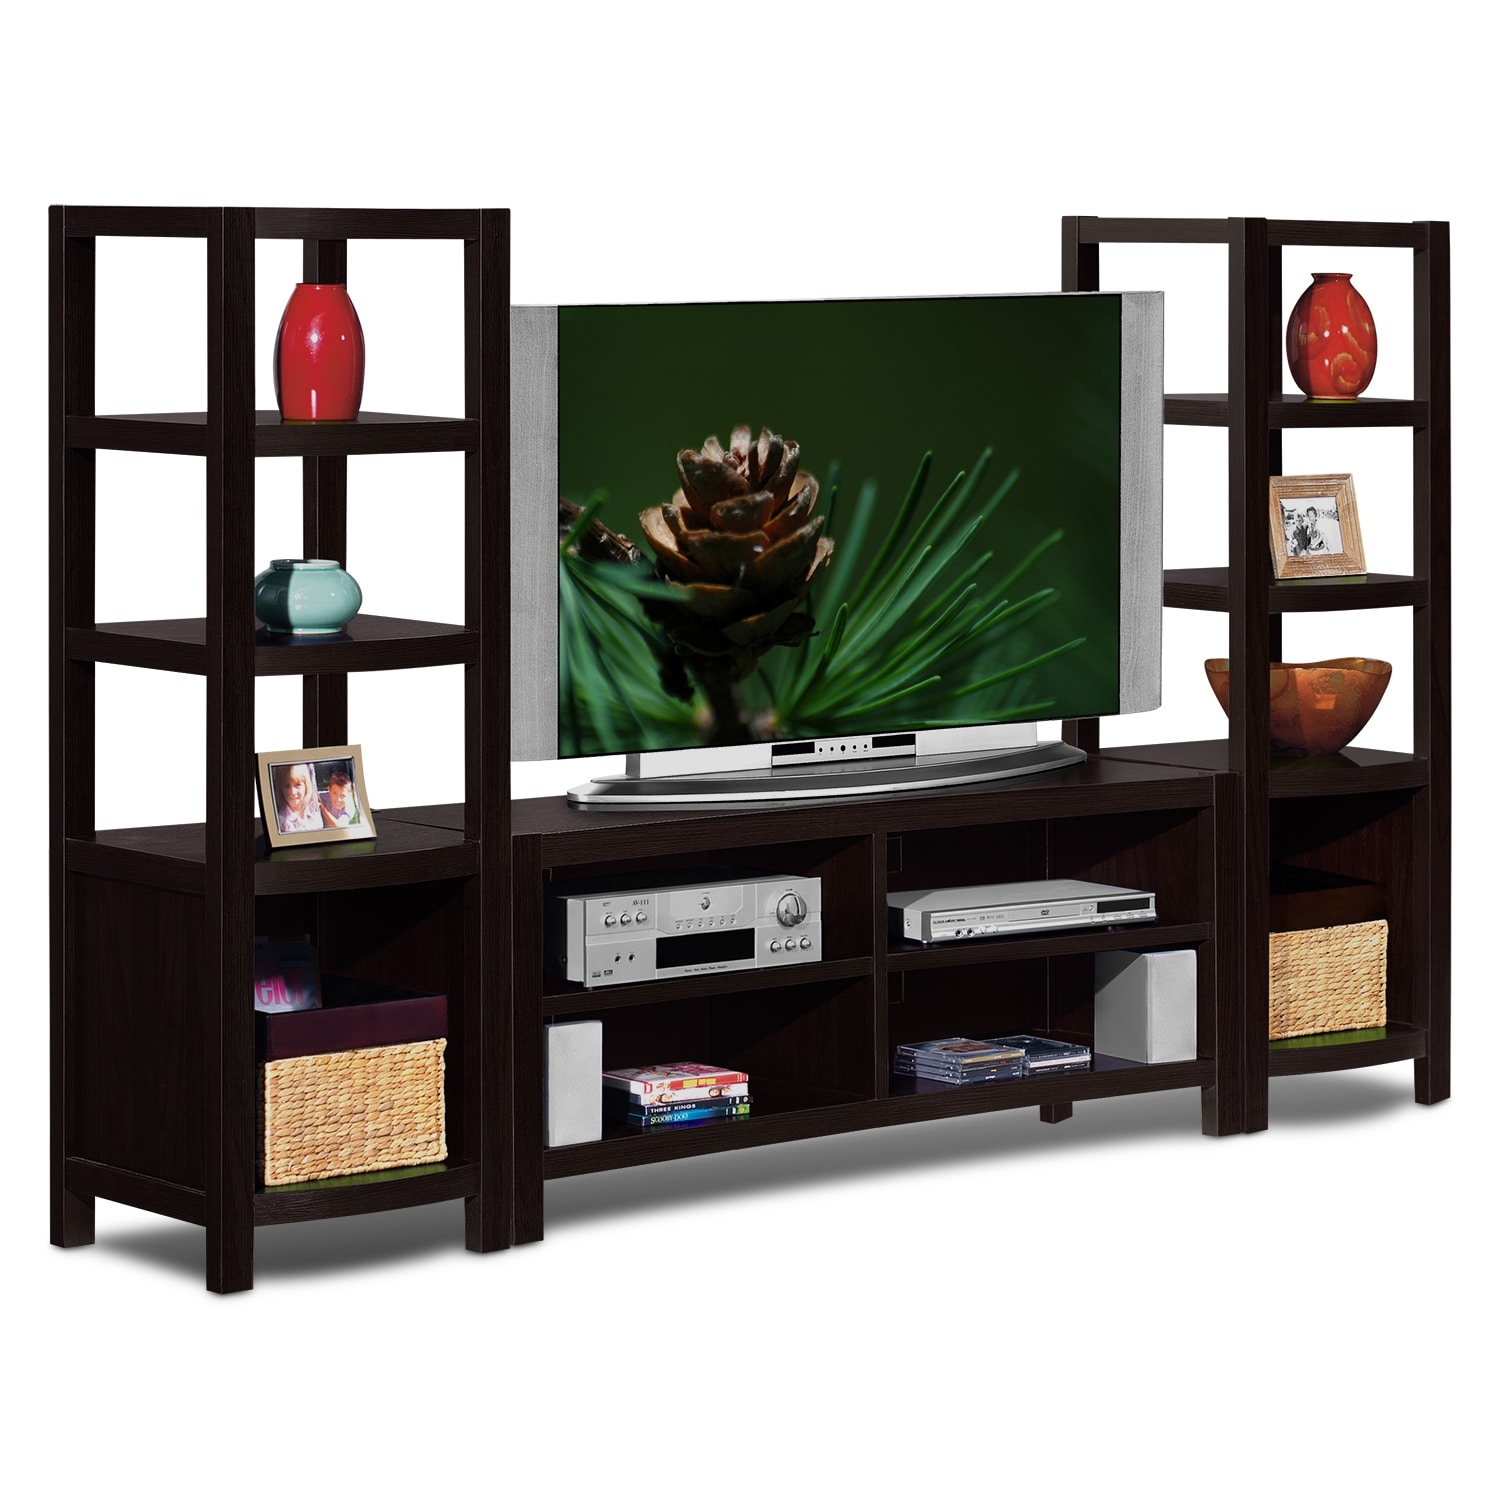 Townsend entertainment wall units 3 pc entertainment wall Wall unit furniture